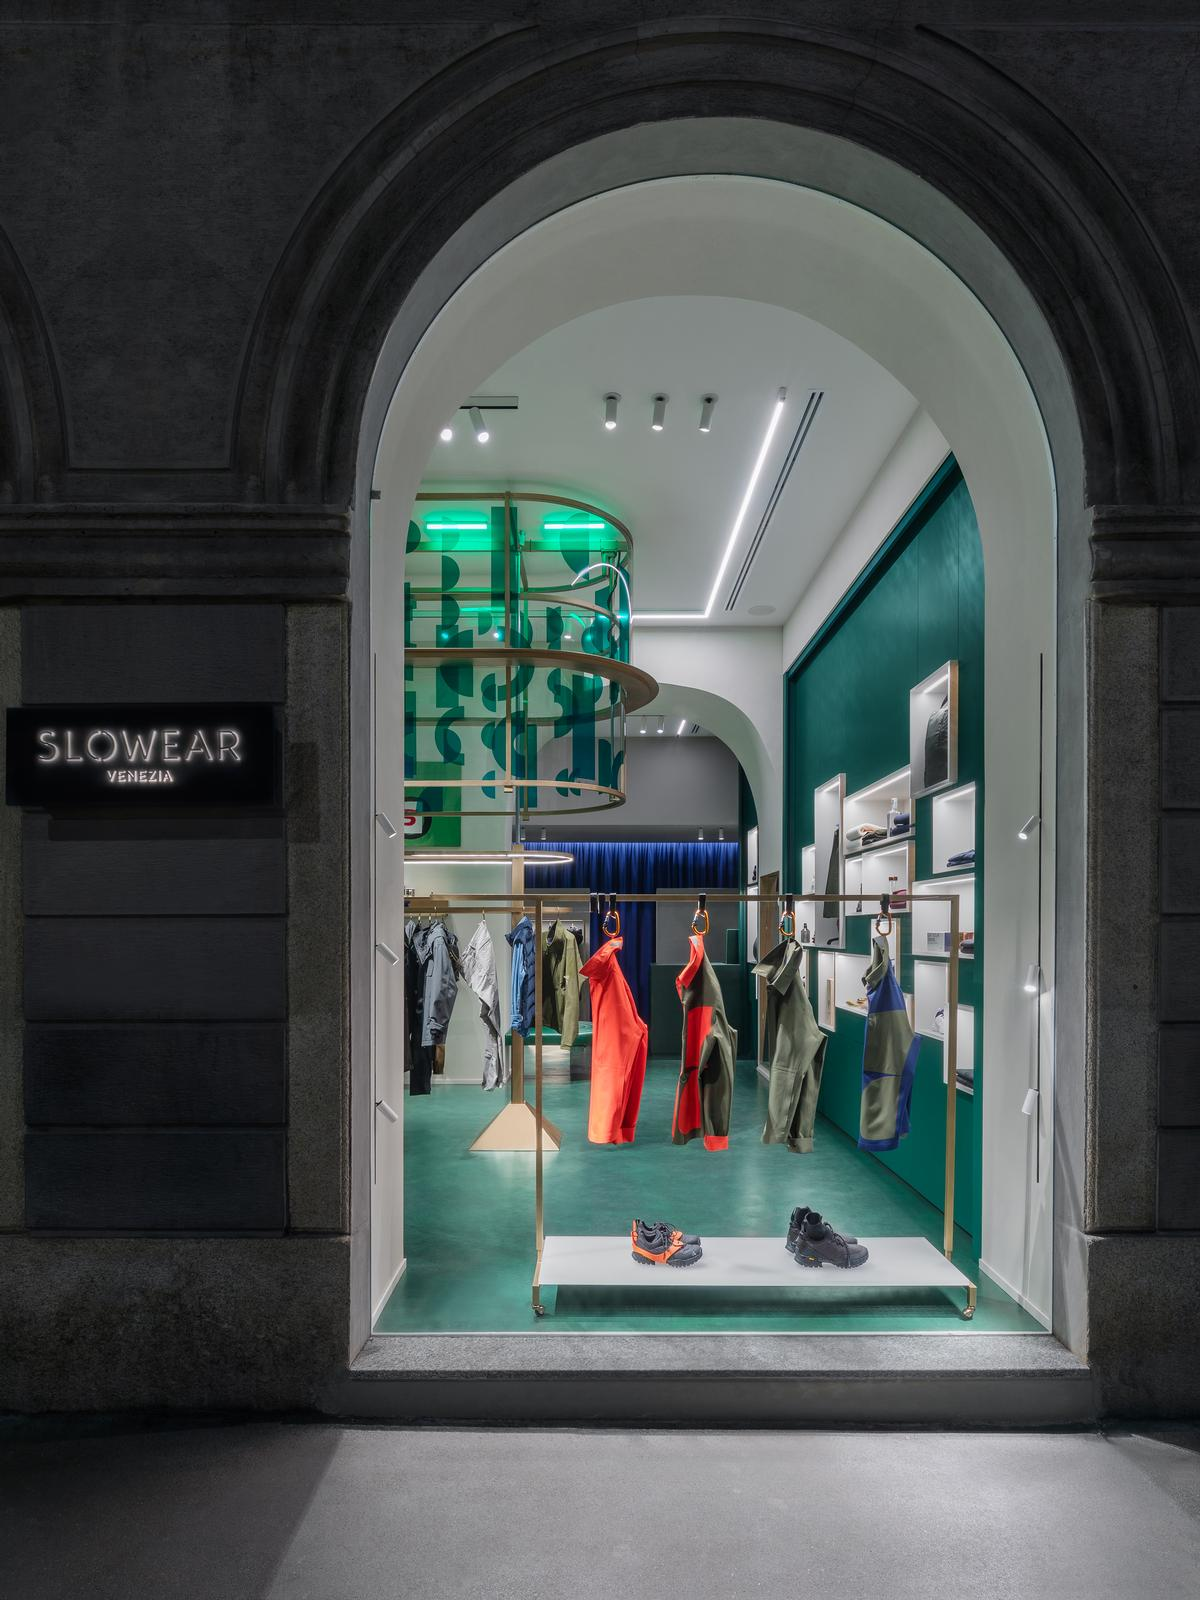 Windows on the street provide a view of the machine / Alessandro Saletta for DSL Studio